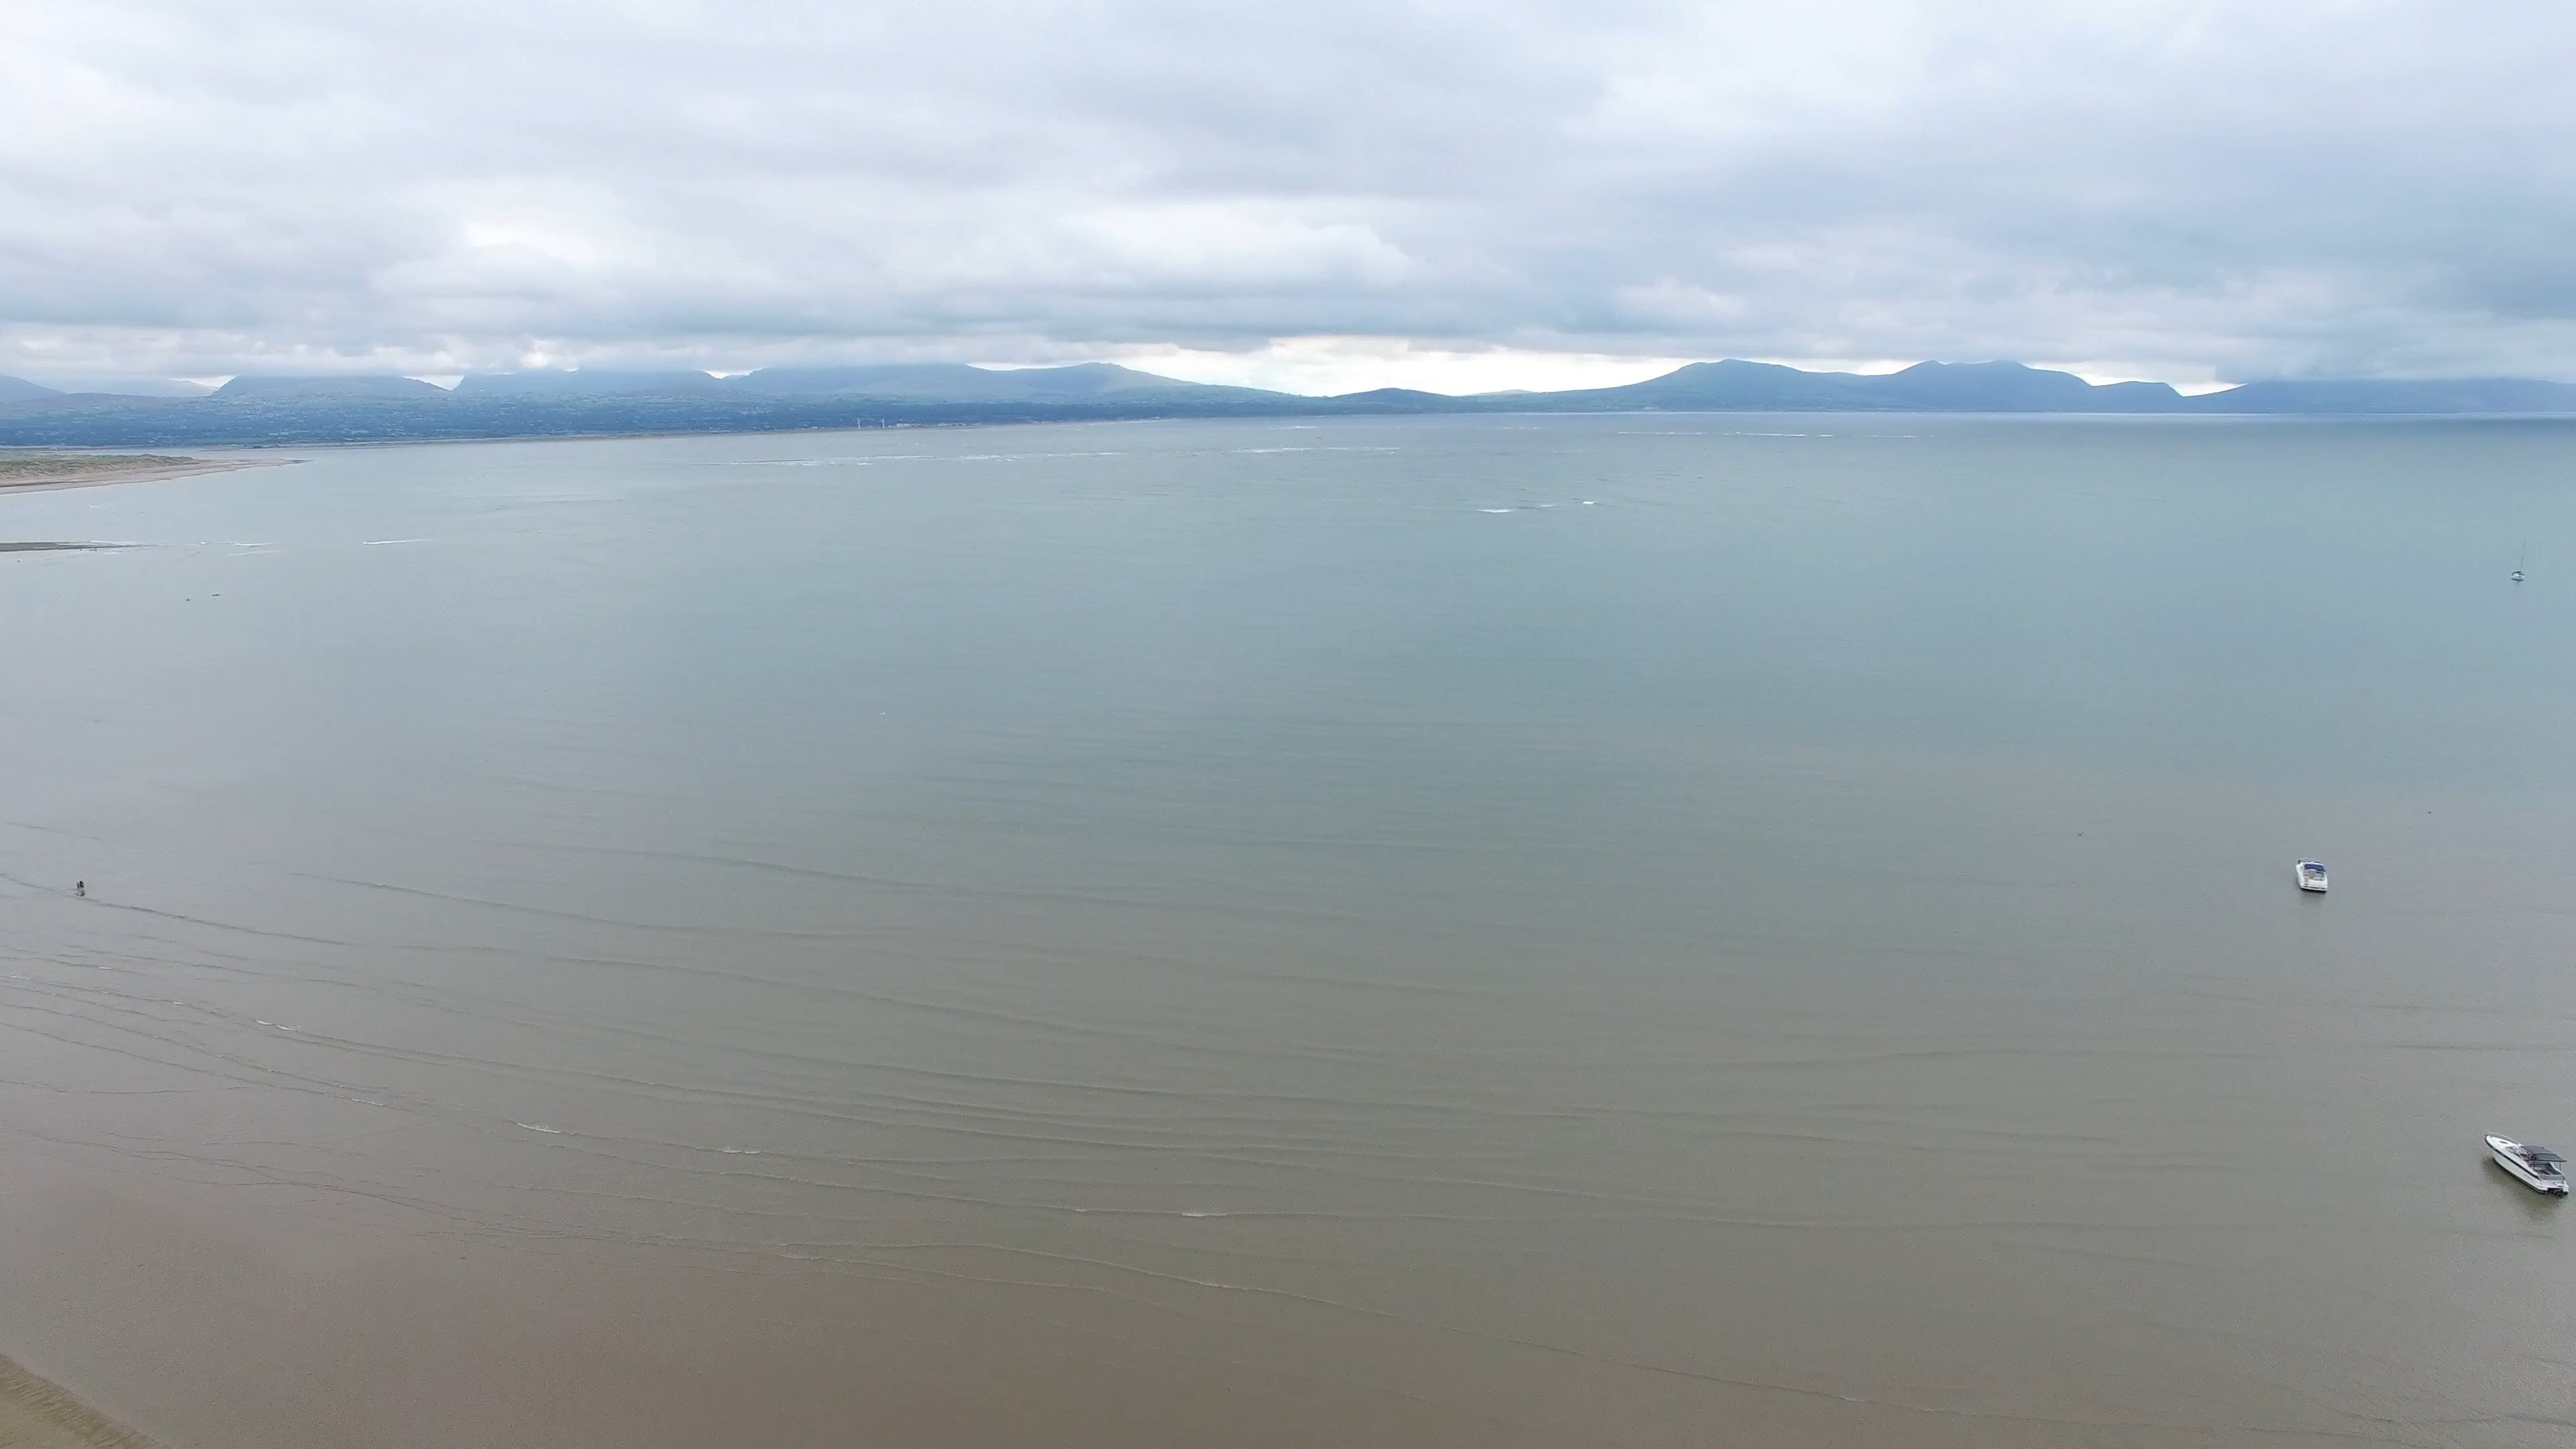 4K Footage of a Sea on a Cloudy Day